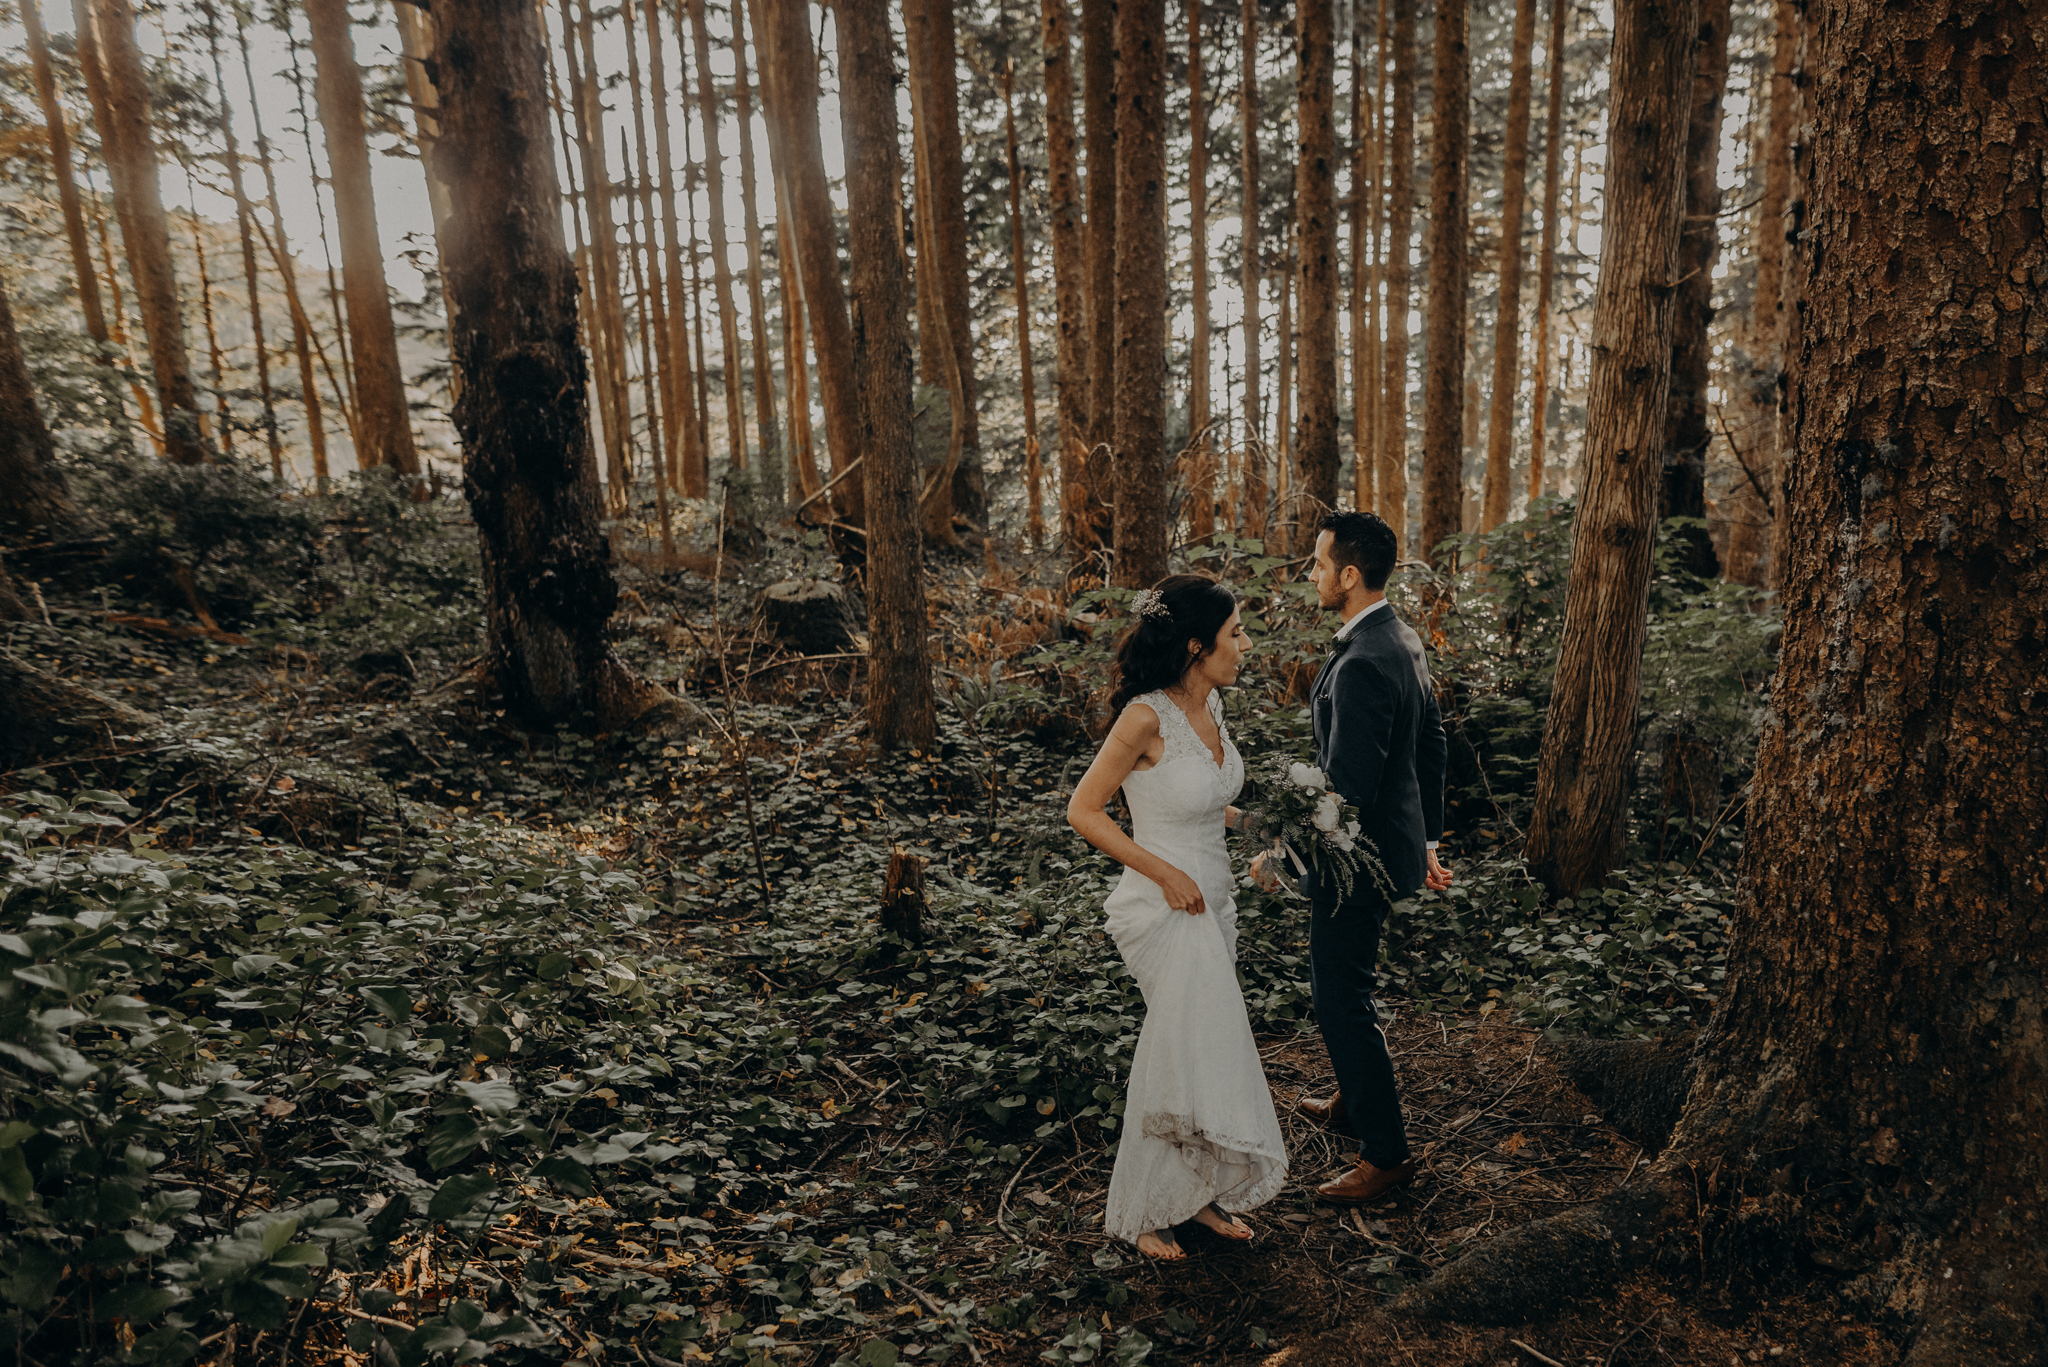 Isaiah + Taylor Photography - Cape Flattery Elopement, Olympia National Forest Wedding Photographer-093.jpg